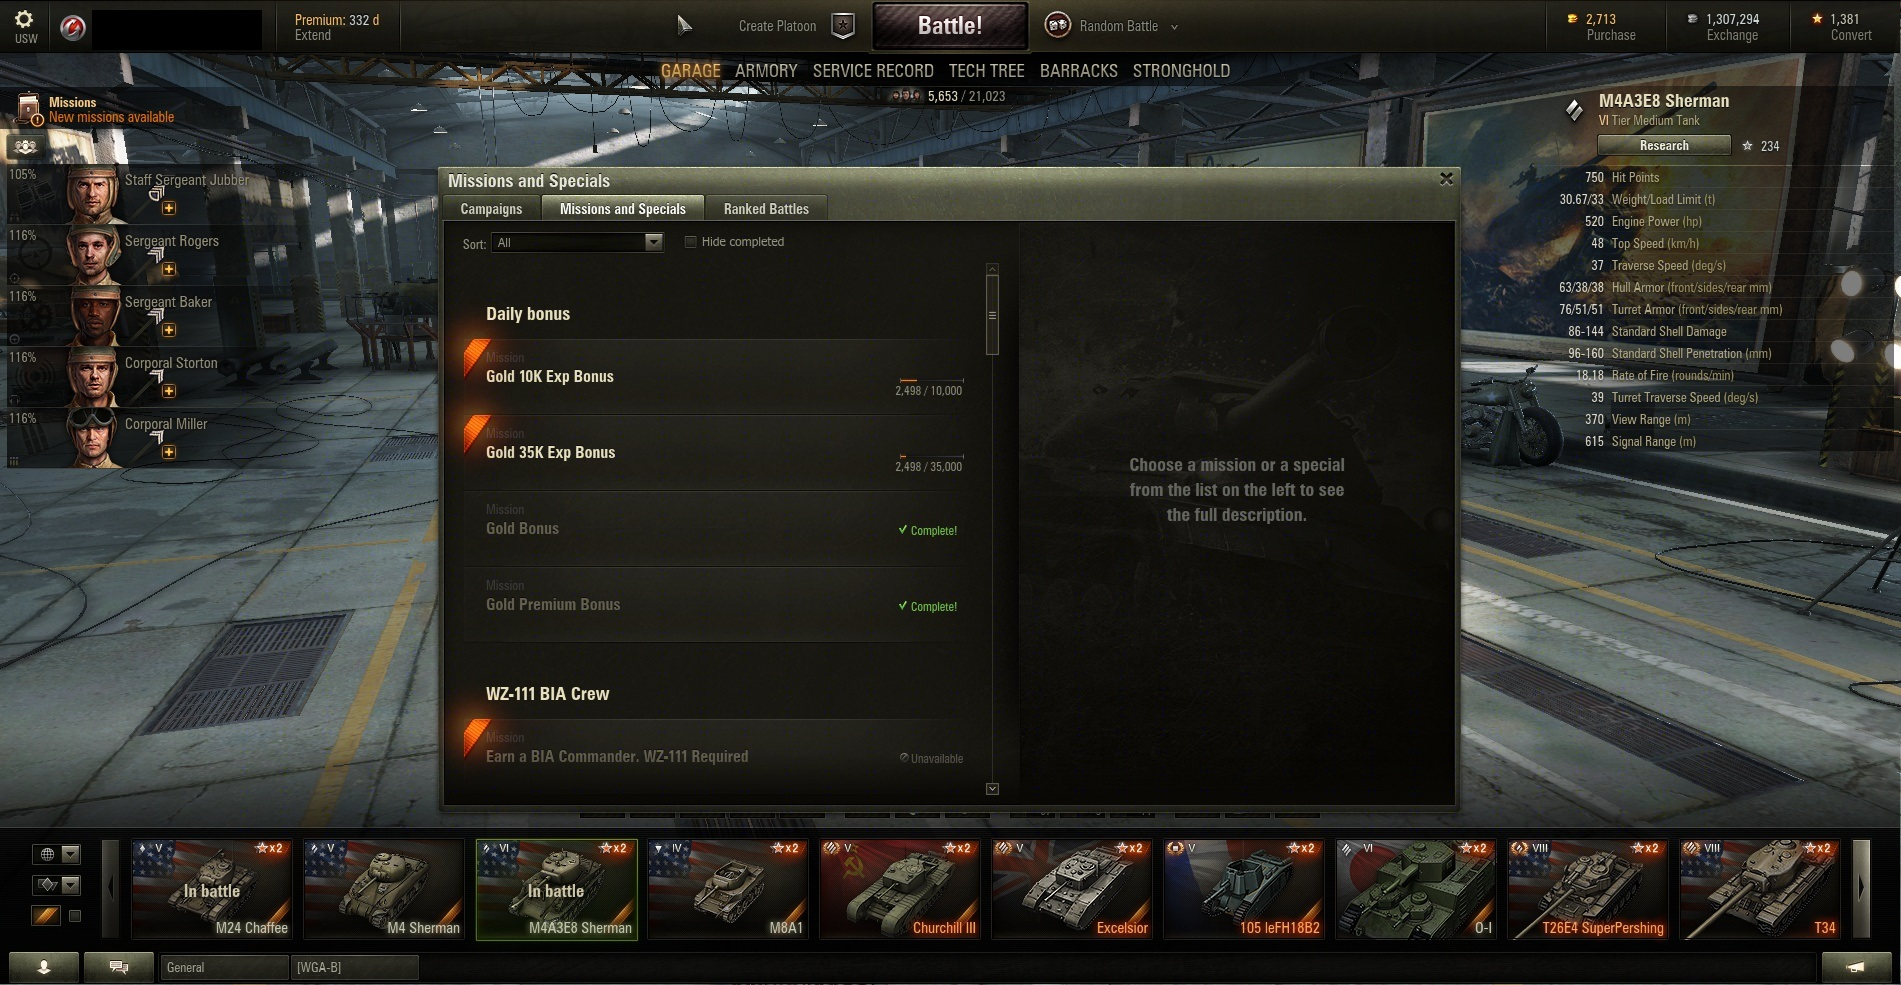 World of Tanks game: clans - purpose, goals and responsibilities